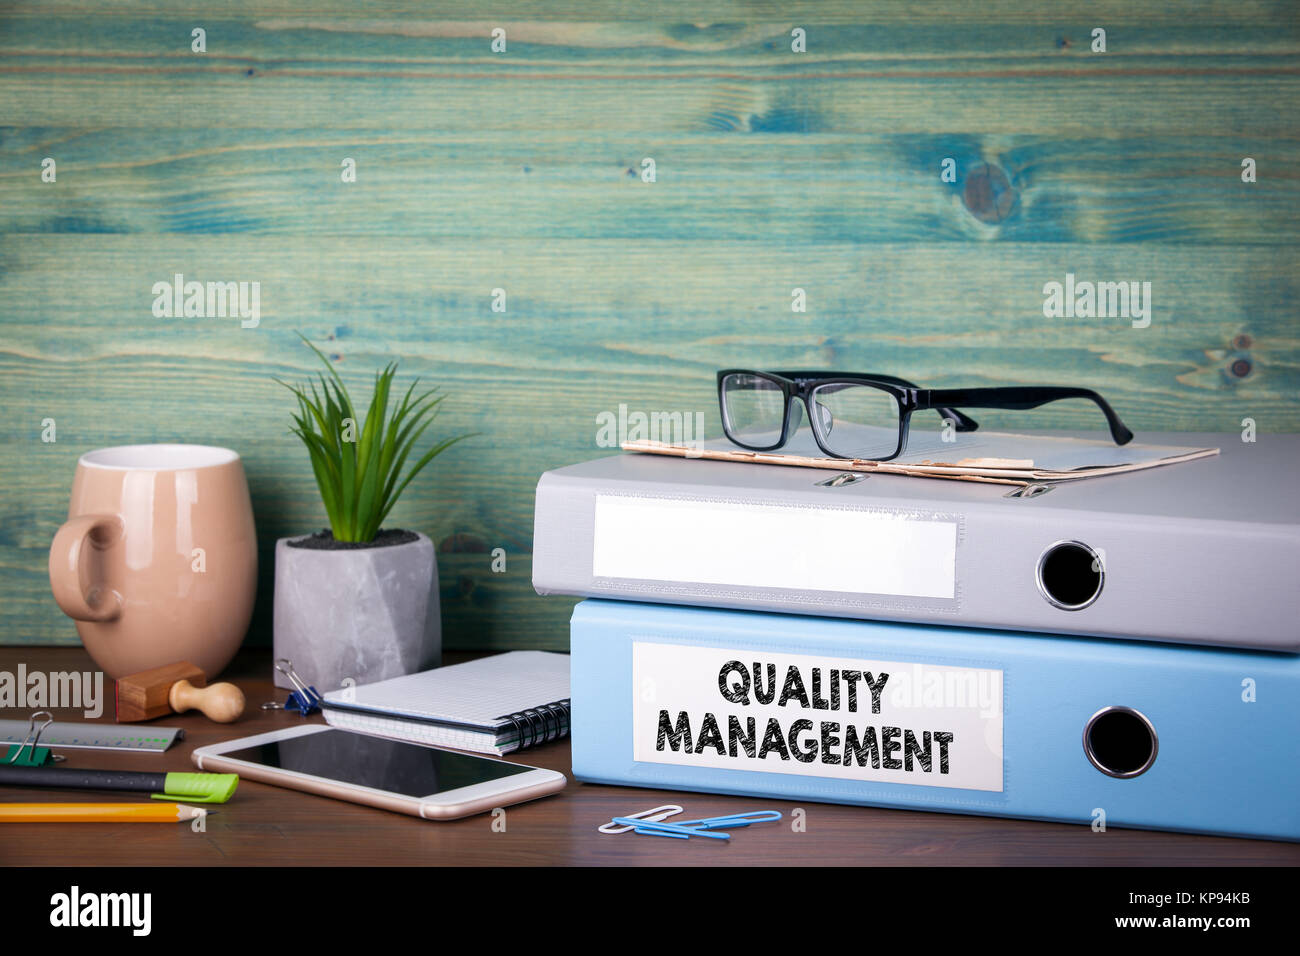 quality management concept. Binders on desk in the office. Business background - Stock Image